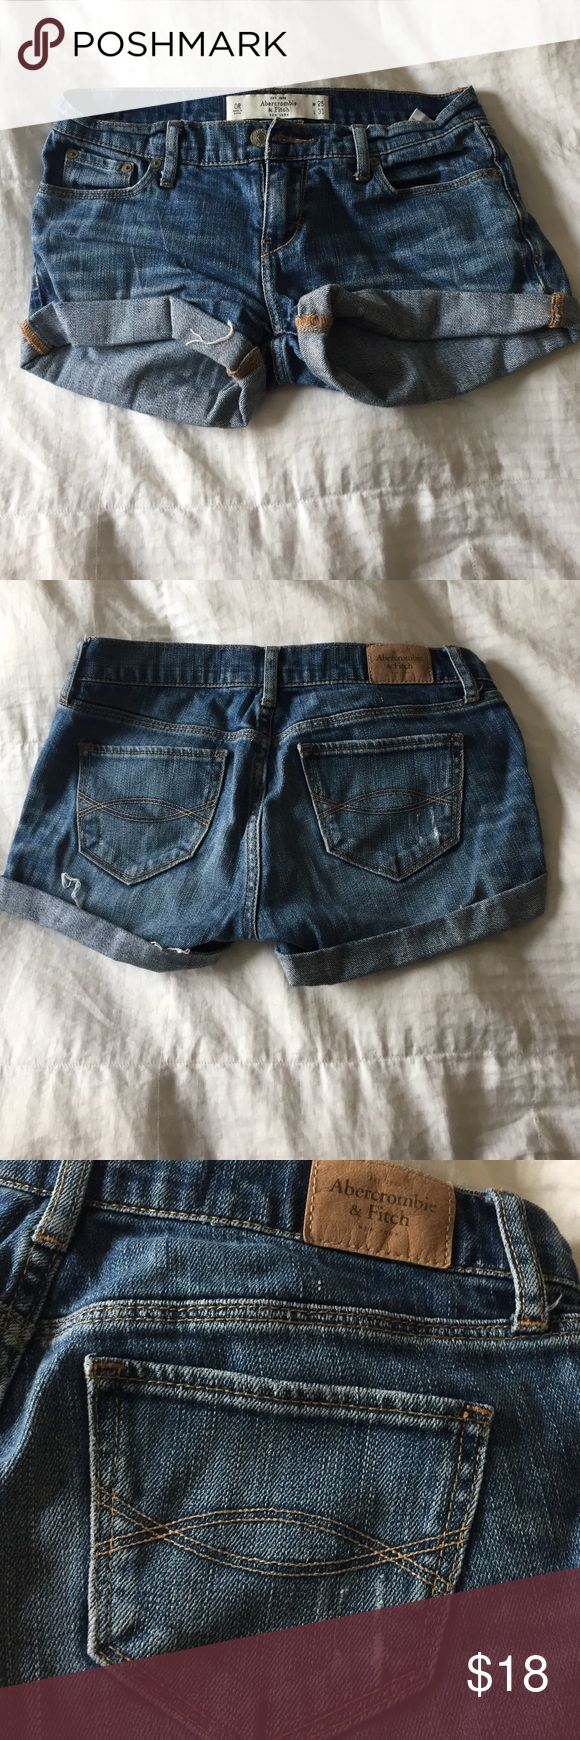 HAND CUT JEAN SHORTS CUT FROM PANTS FIT GREAT Abercrombie & Fitch Shorts Jean Shorts